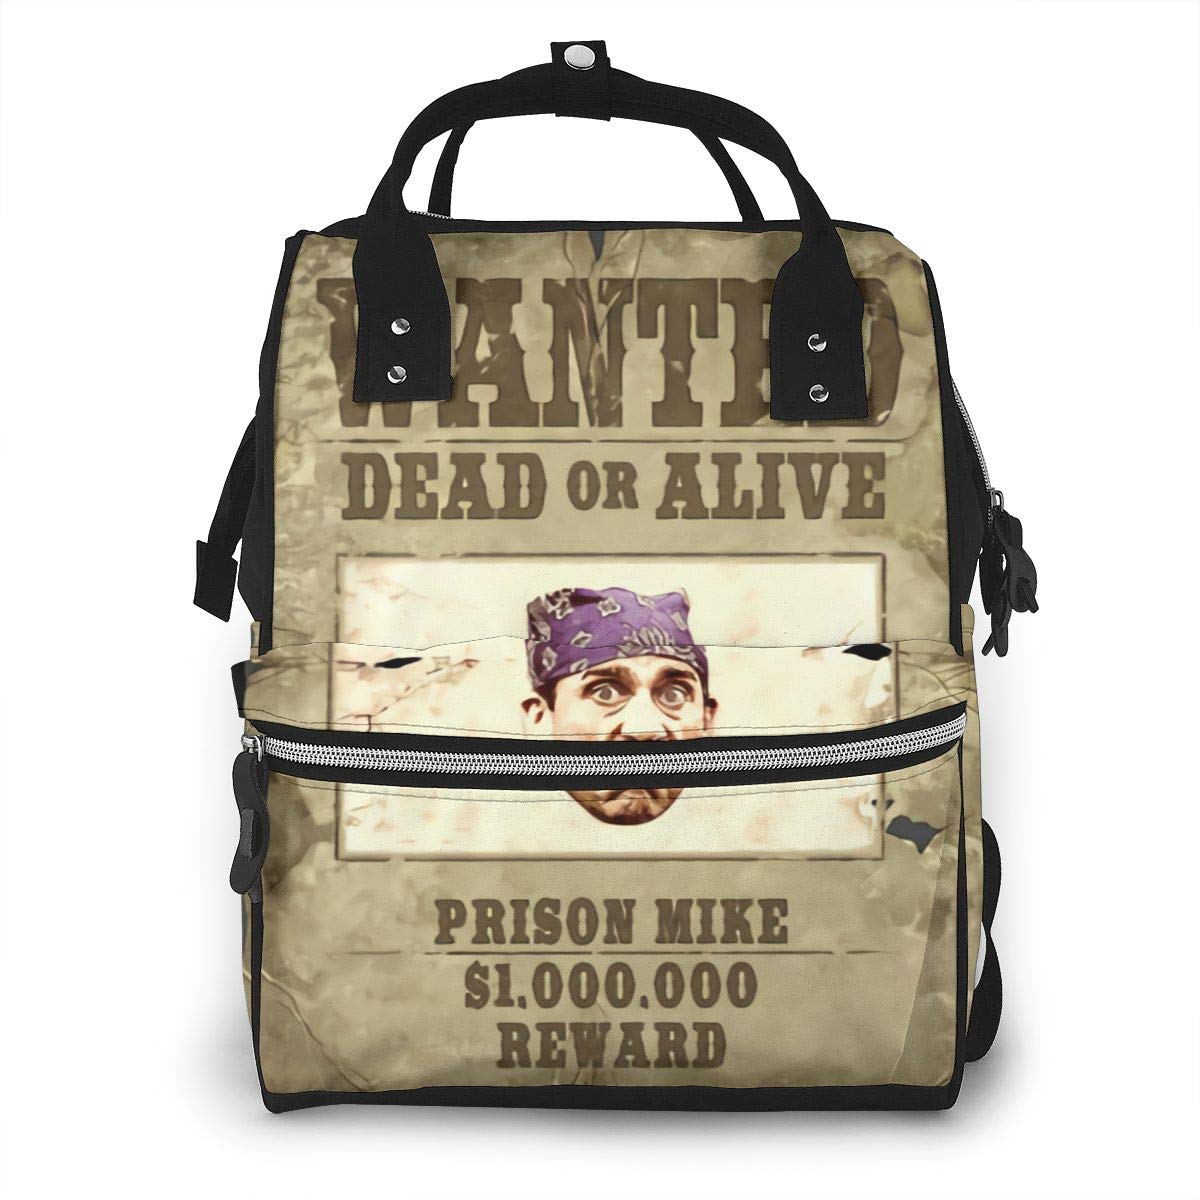 Wanted (Prison Mike) Michael Scott Durable Large Capacity Diaper Bag Mommy Backpack